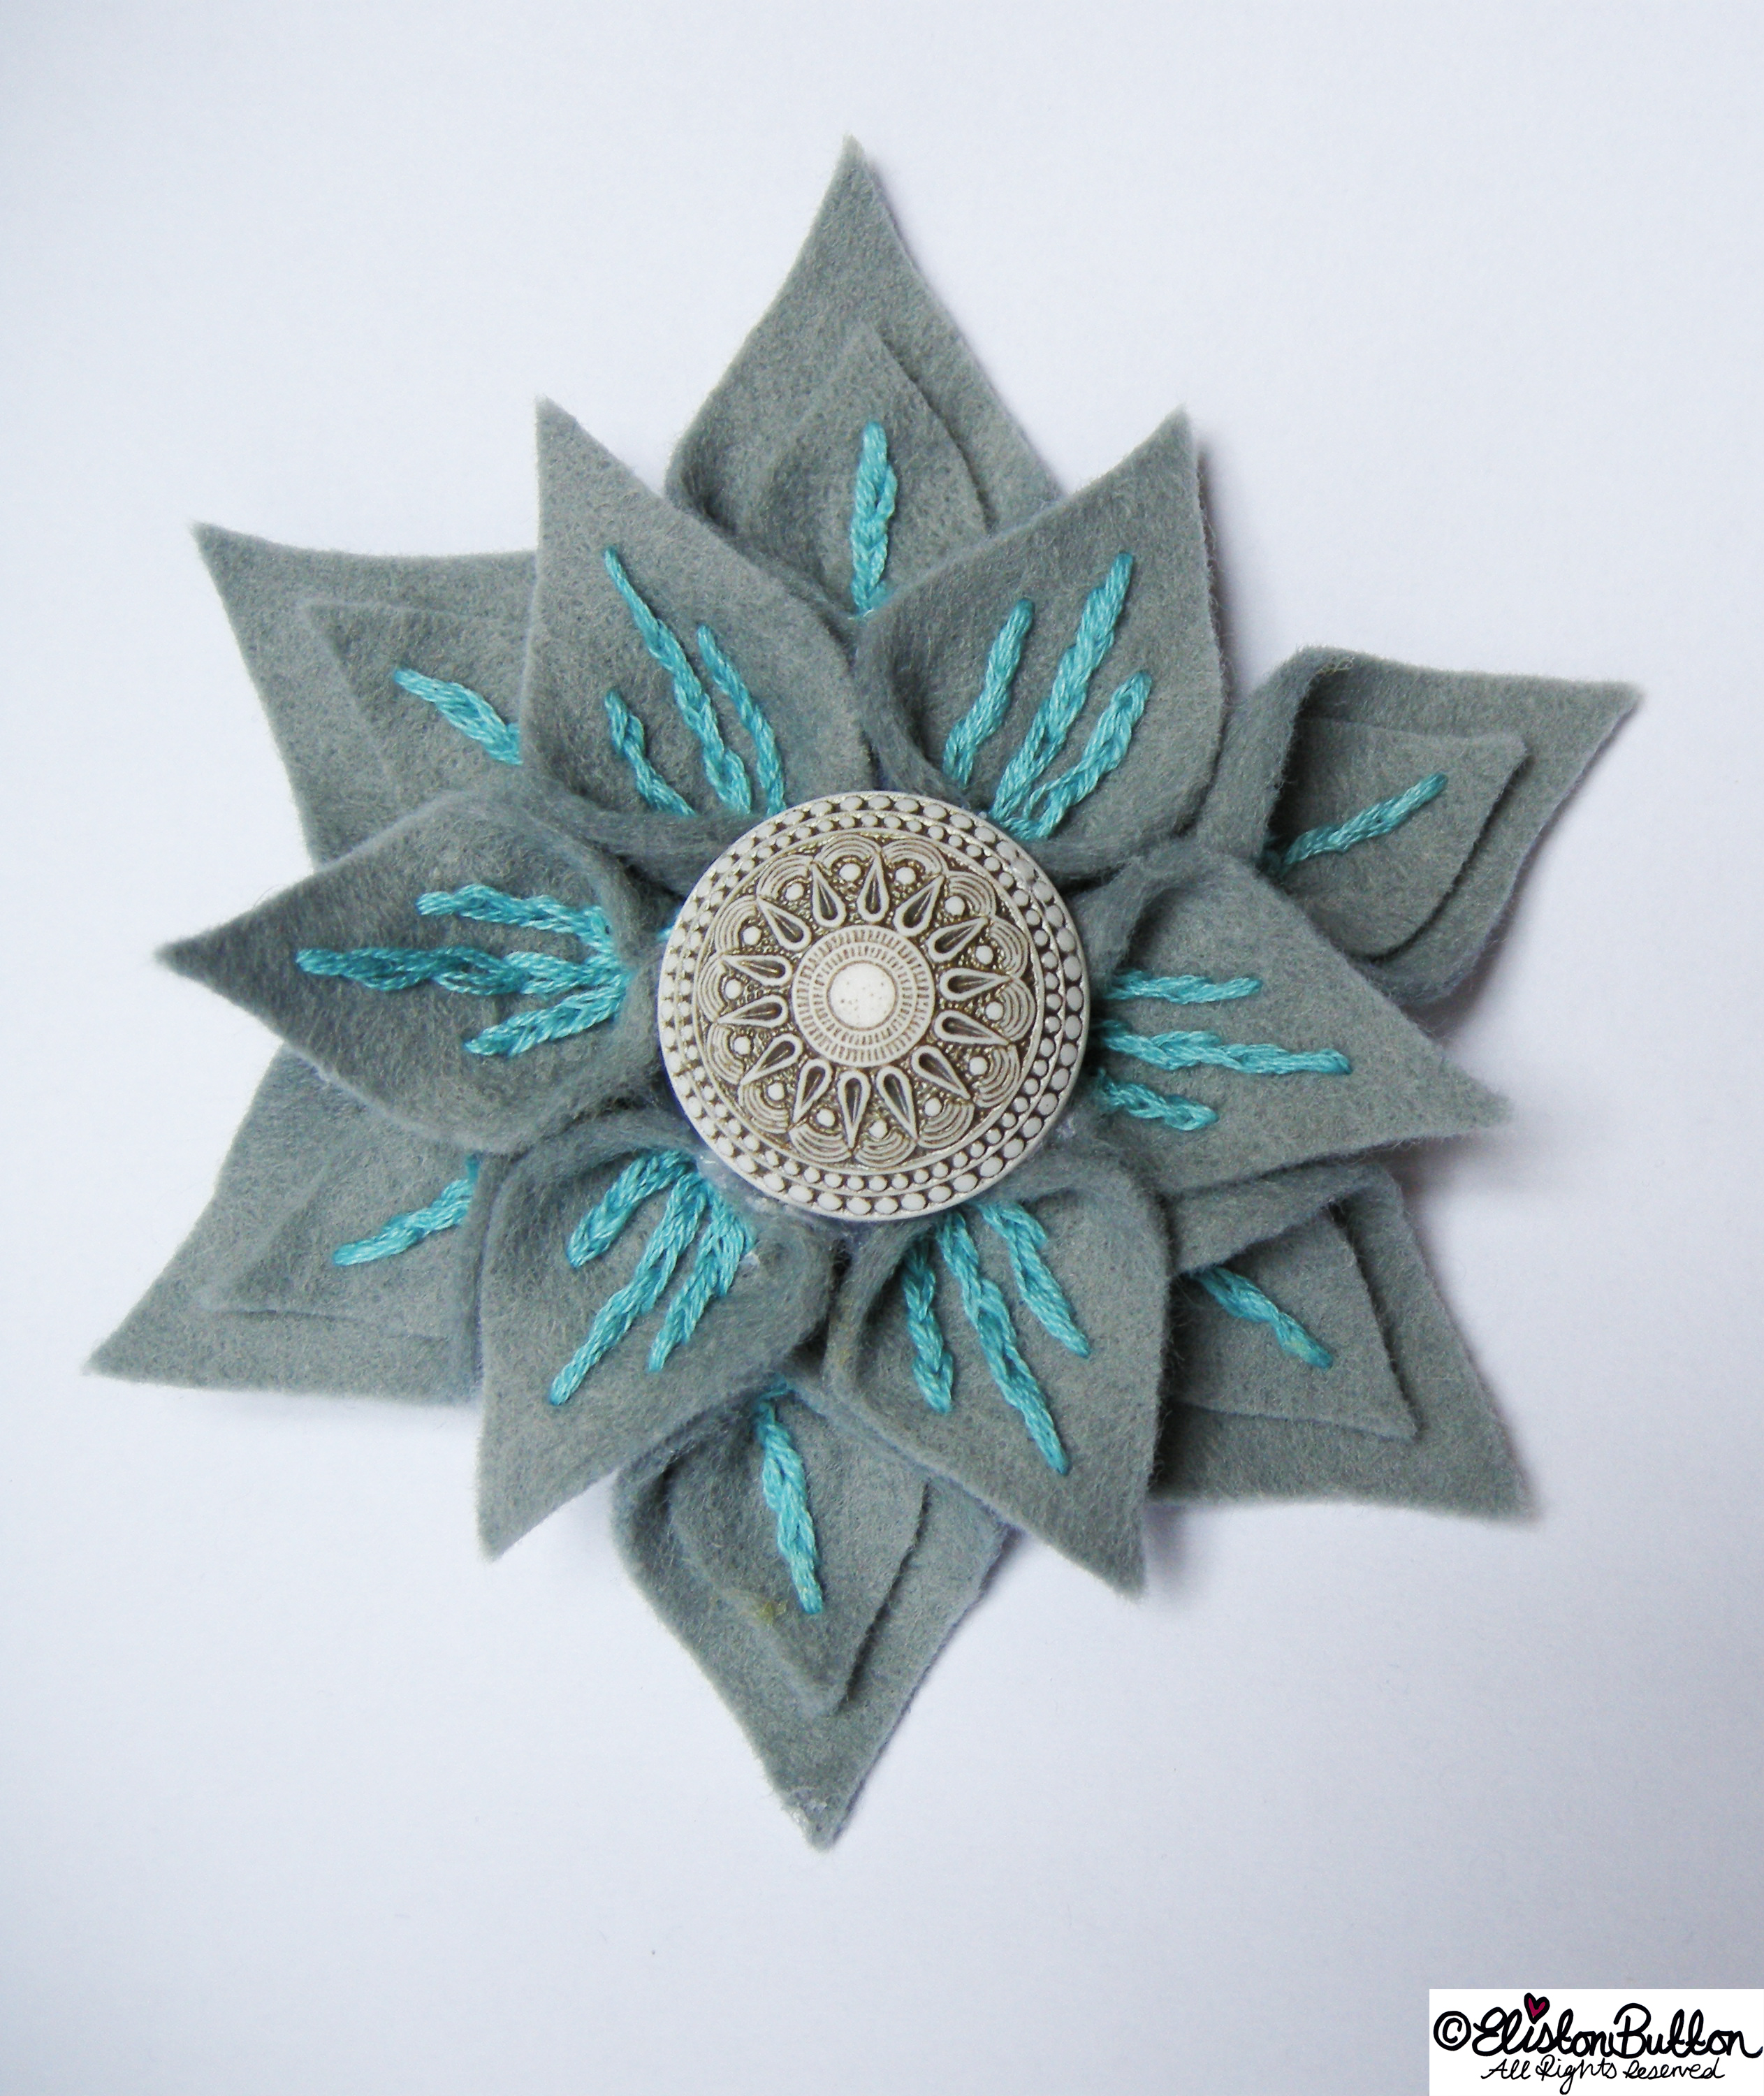 Slate and Seafoam Embroidered Felt Flower Brooch by Eliston Button - 27 Before 27 - Slate and Seafoam at www.elistonbutton.com - Eliston Button - That Crafty Kid – Art, Design, Craft & Adventure.